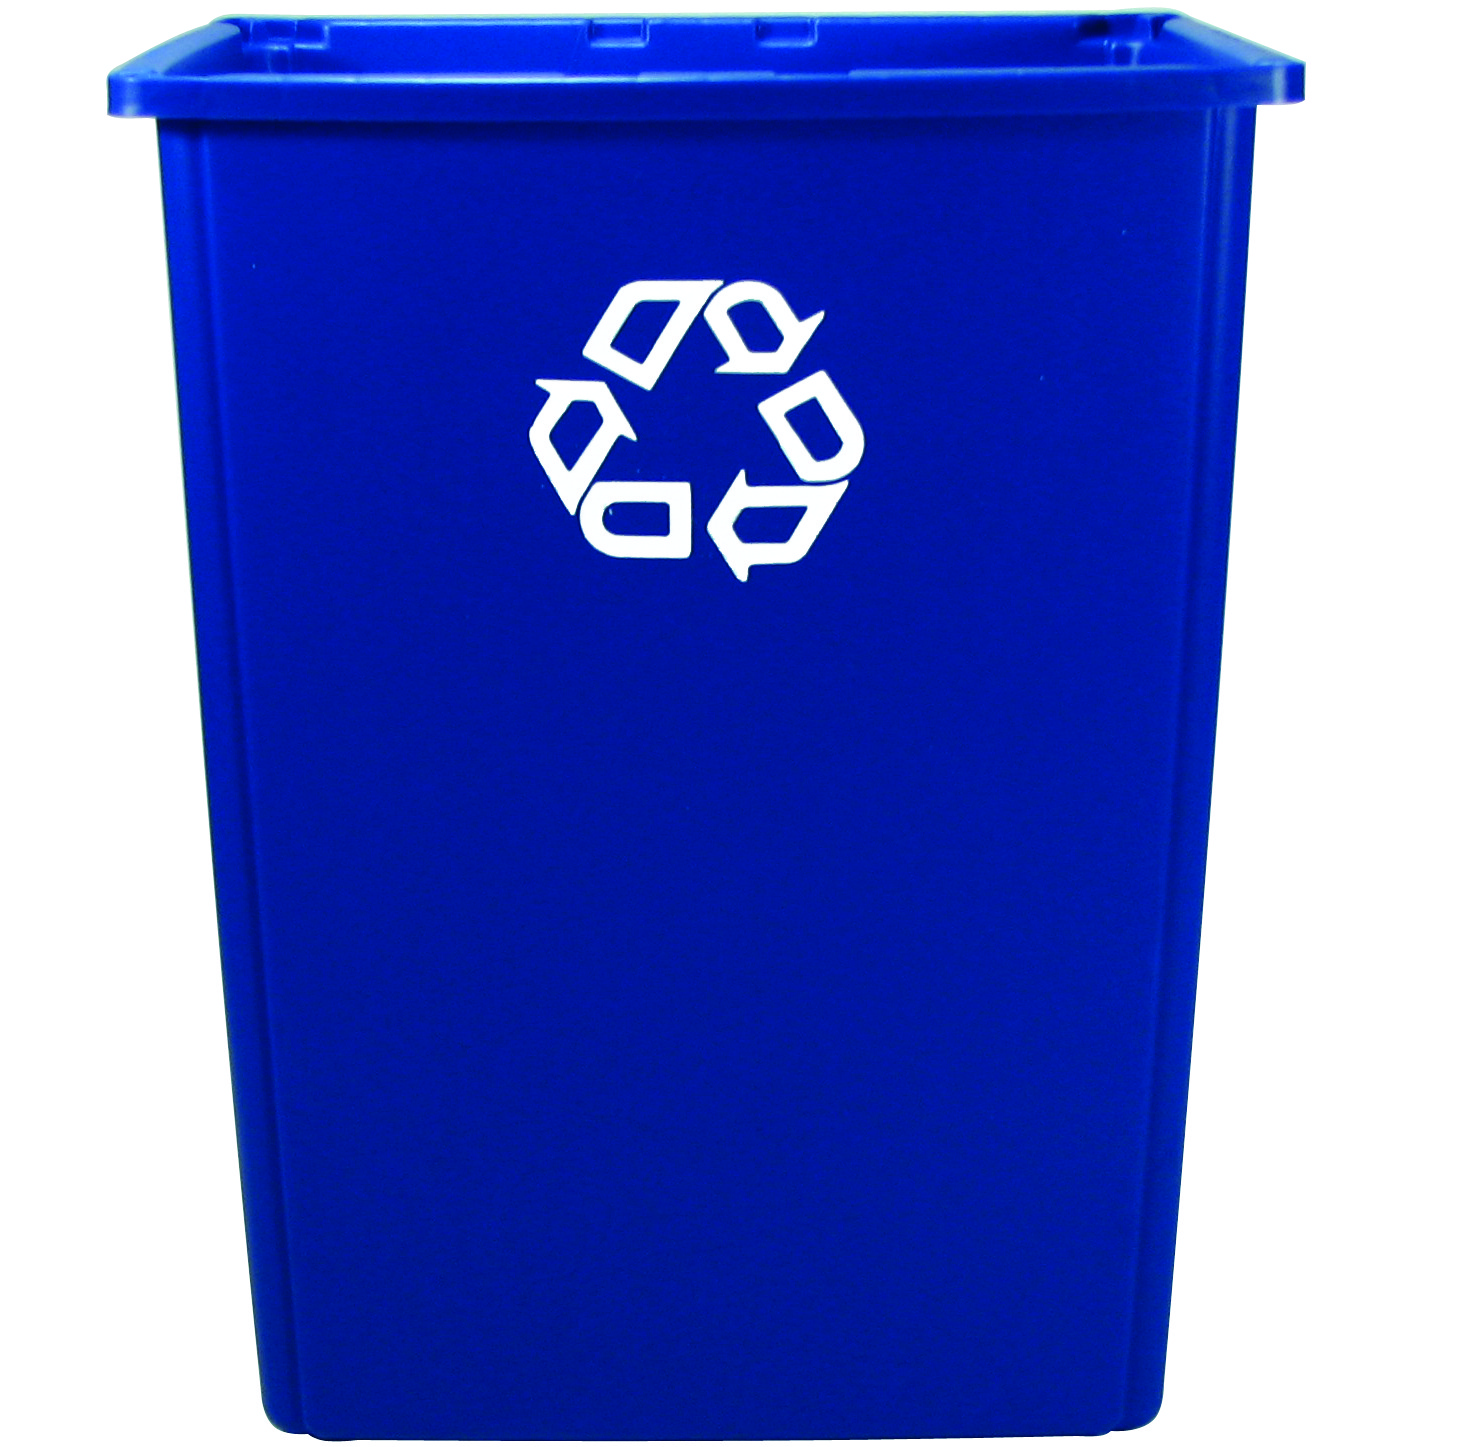 39215568 likewise Glutton Recycling Container p 85 in addition 35 Gallon Untouchable Square Waste Container p 1019 together with Battery Recycling Bin p 180 also 007 FG9T1300BLA. on rubbermaid outdoor trash cans